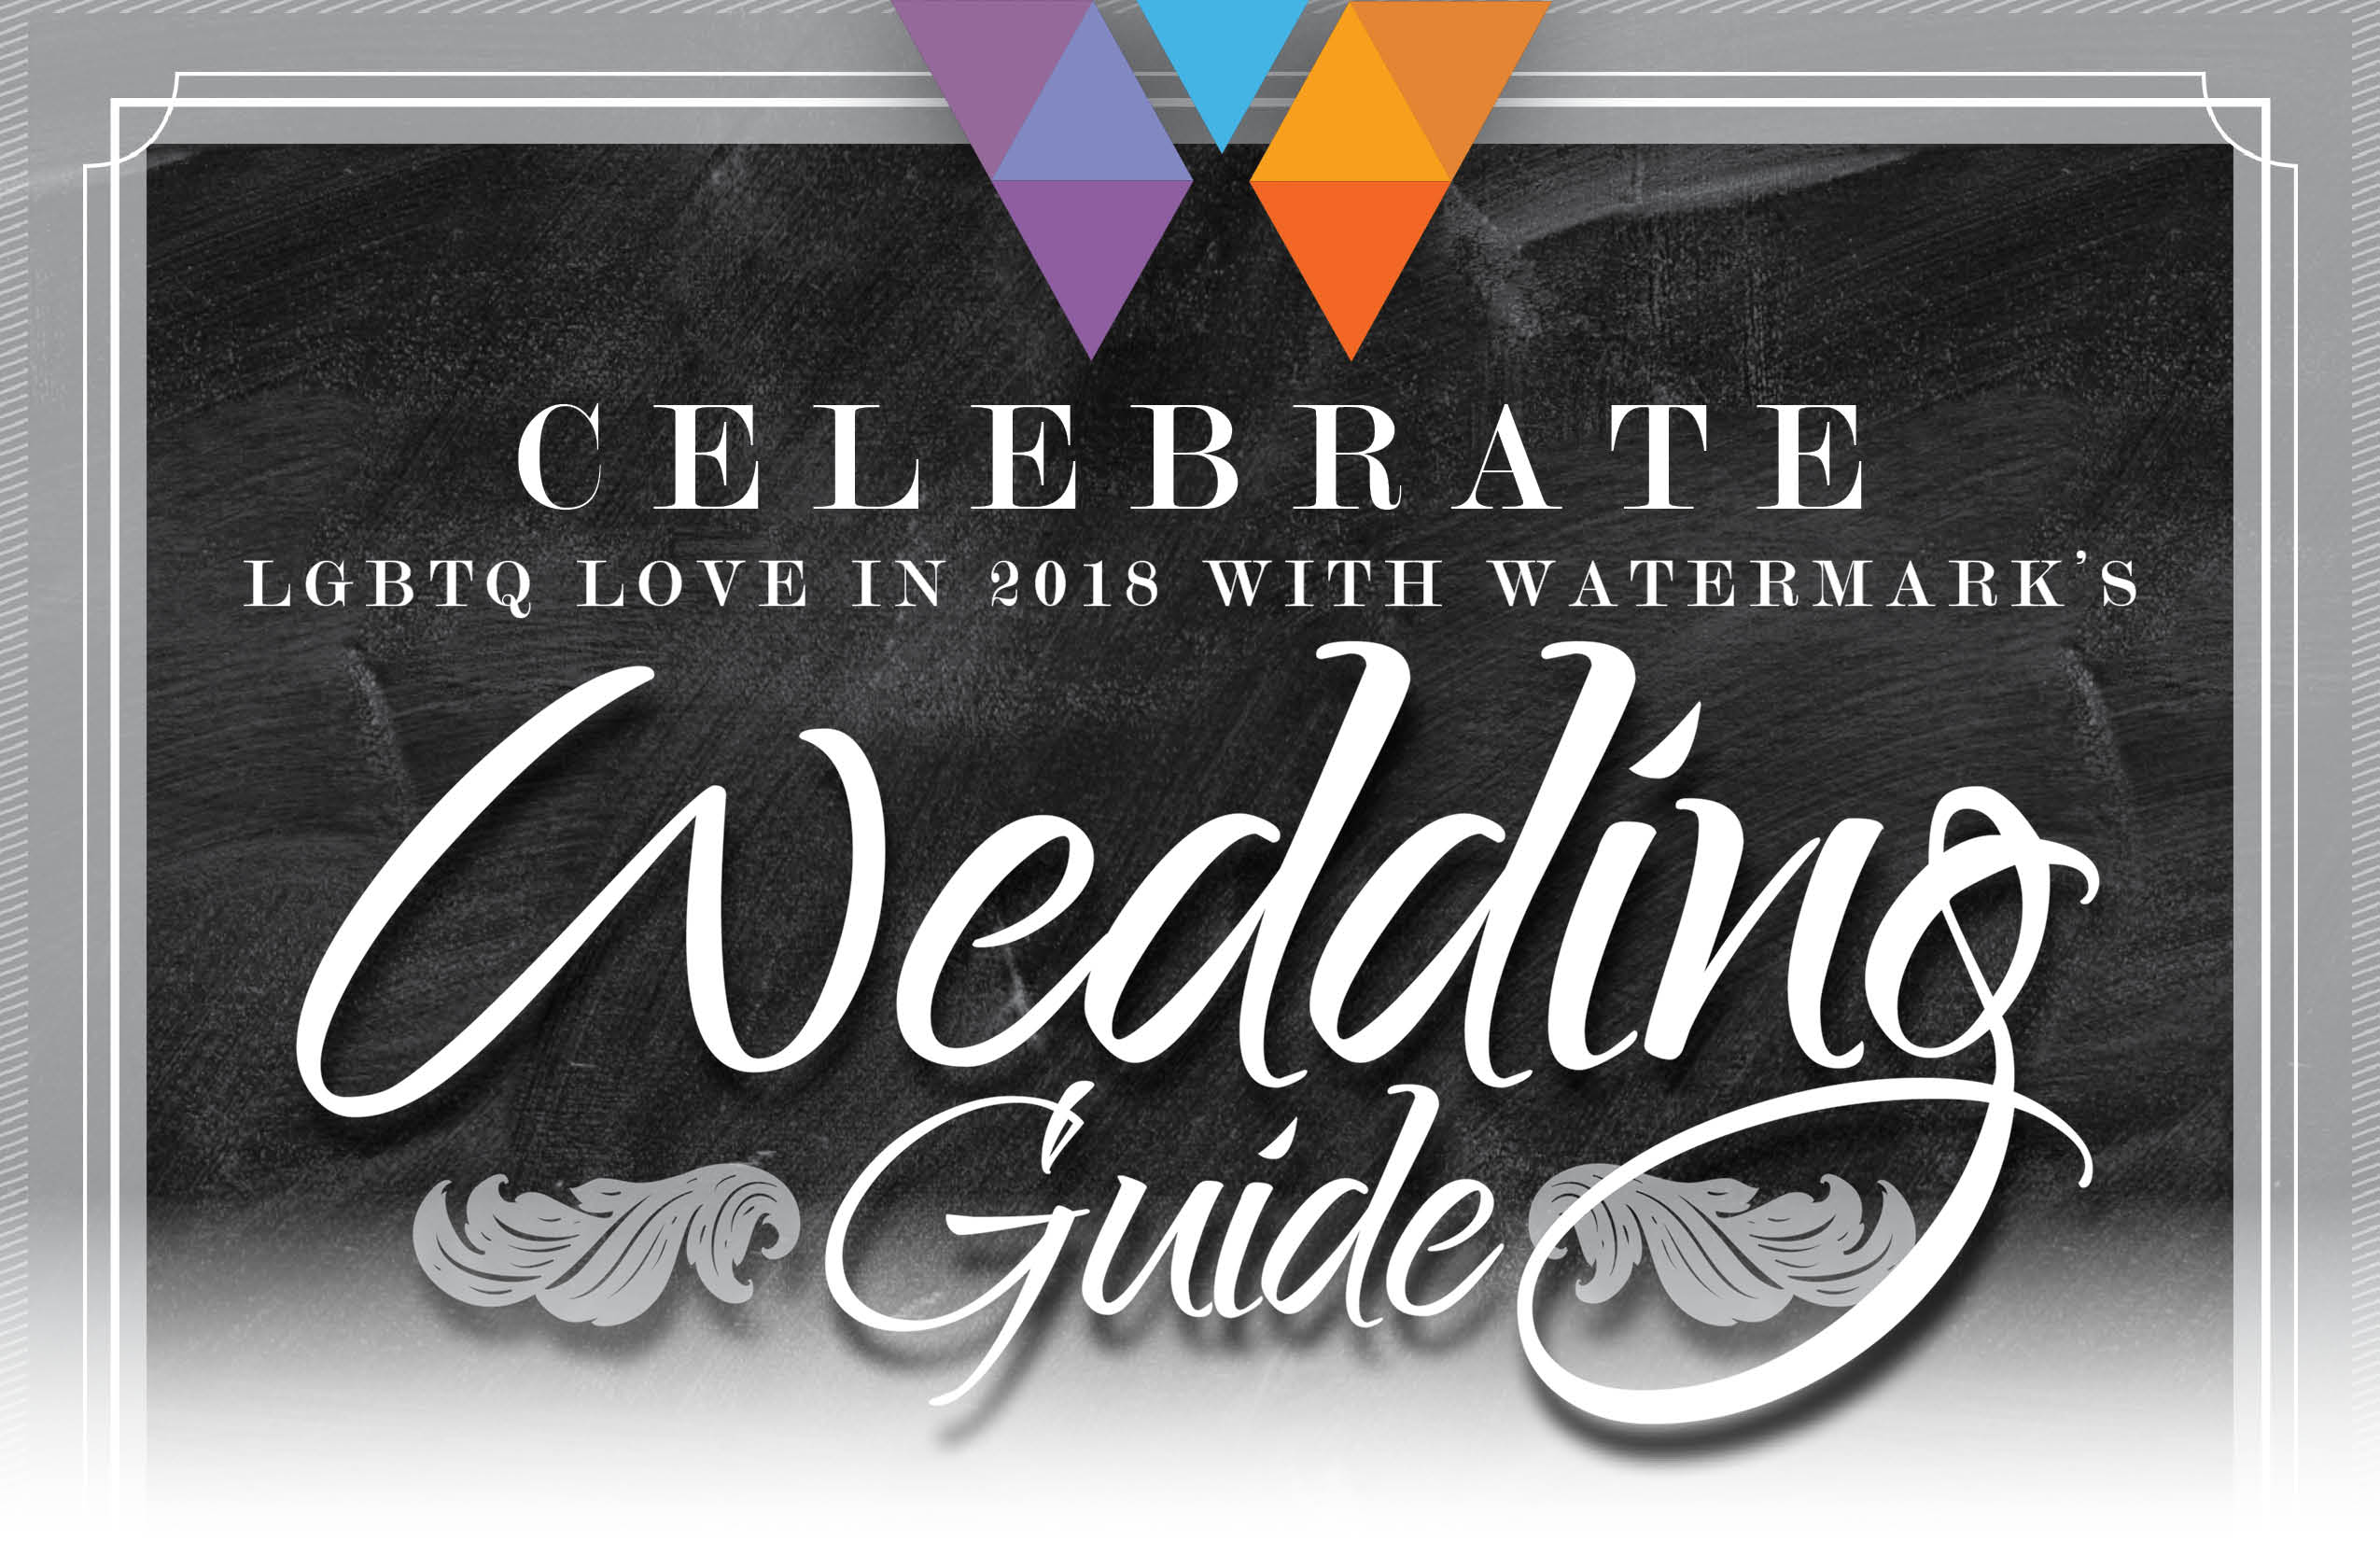 advertise in watermarku0027s wedding guide watermark onlineand tampa bayu0027s longest running and most trusted news resource for the lgbtq community lgbtq couples in our coverage area are looking to tie the knot